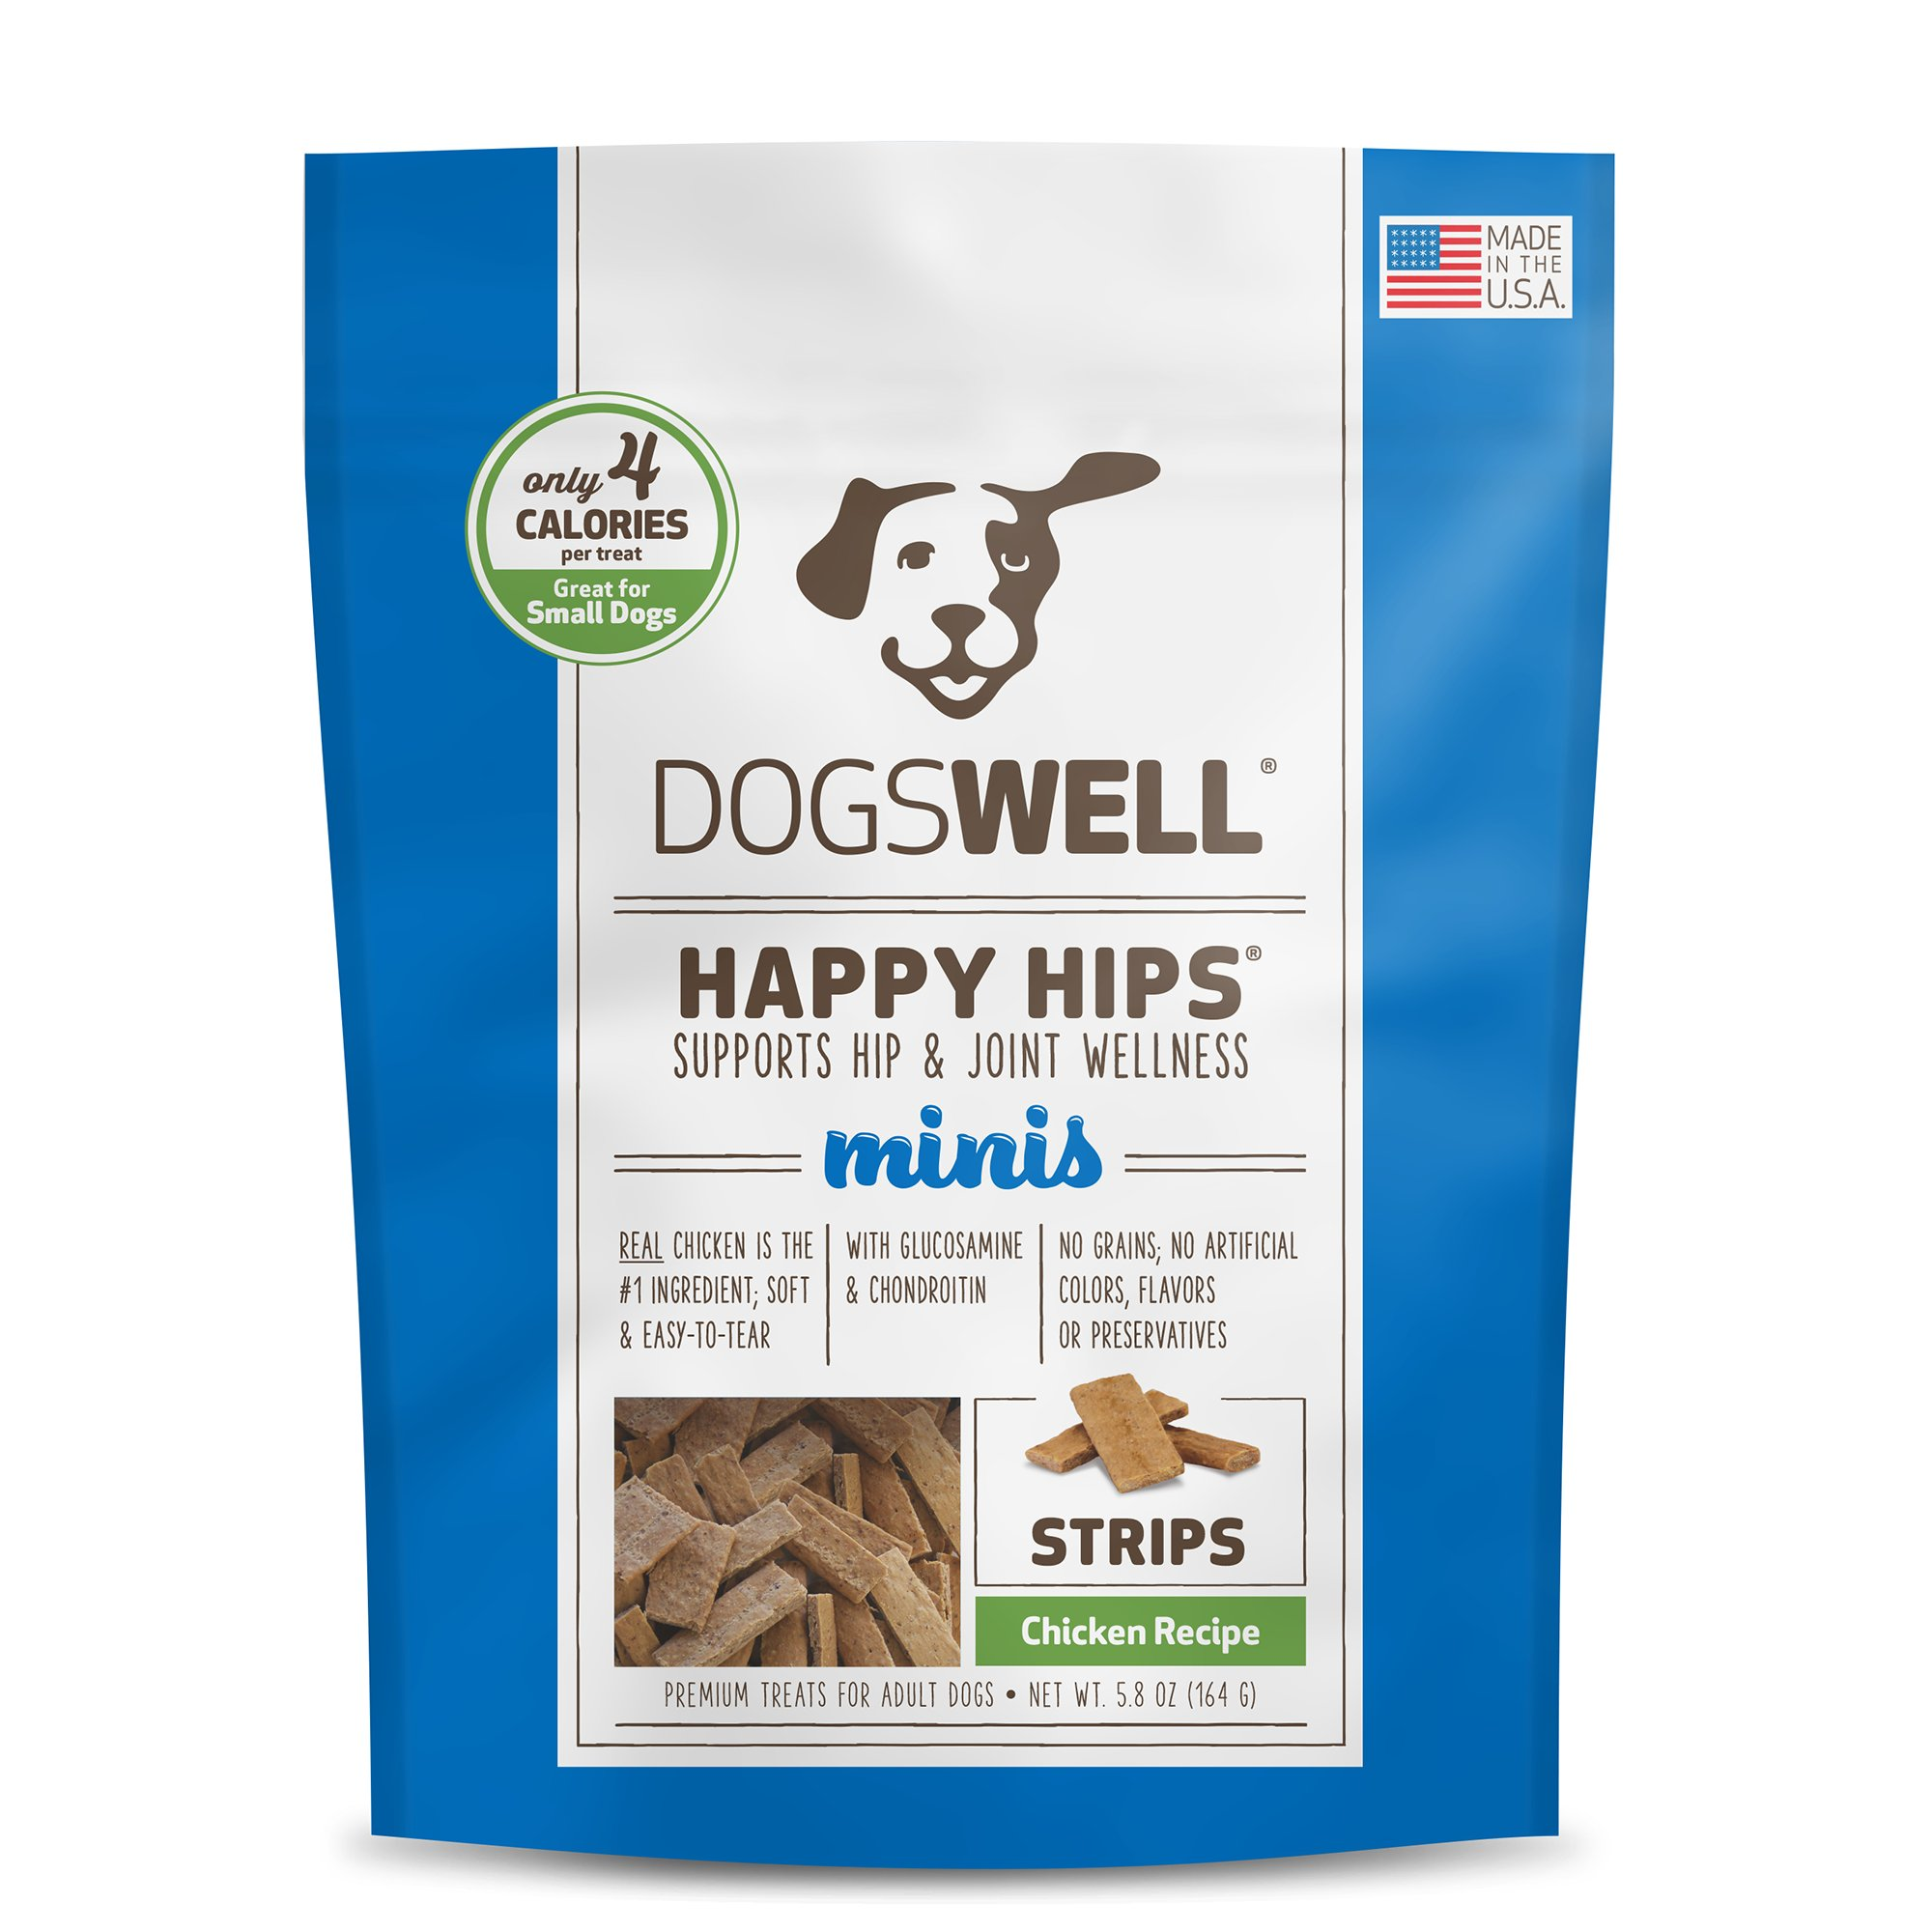 Dogswell Happy Hips Minis Chicken Strips Dog Treats